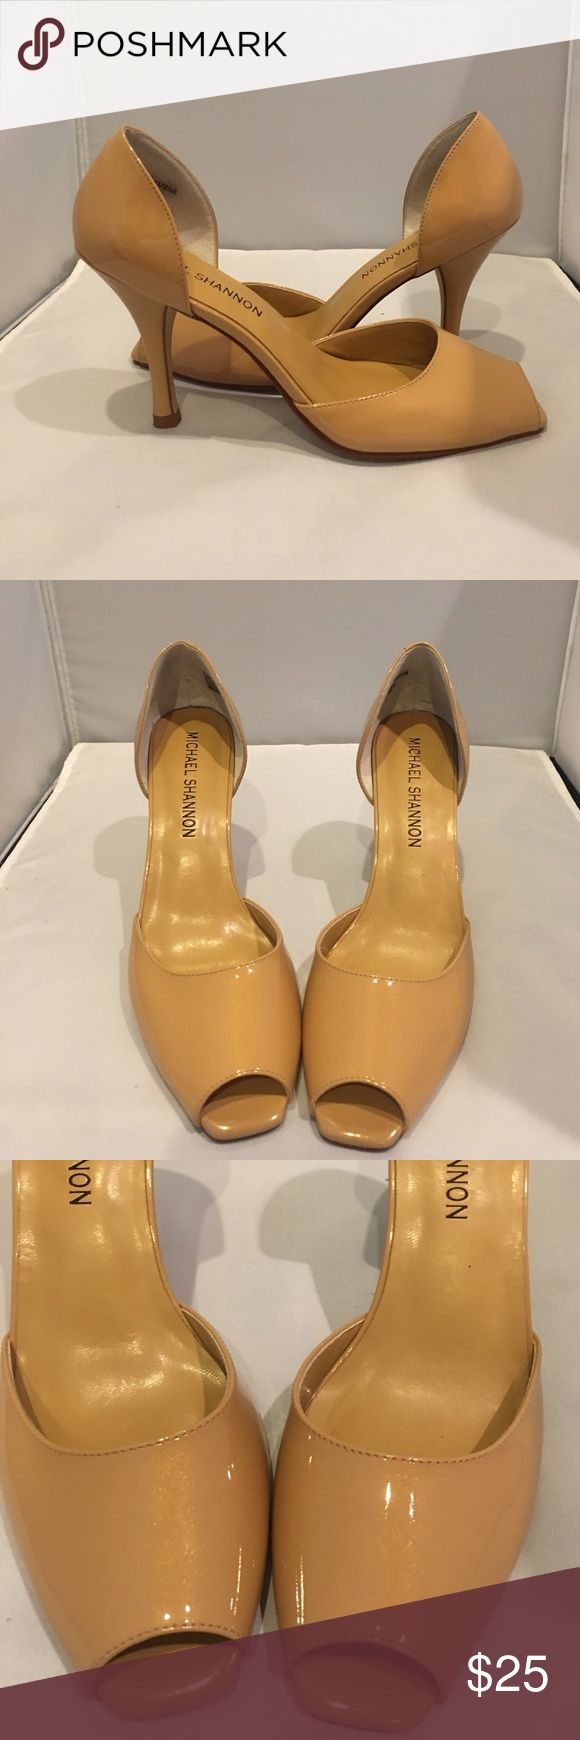 "Michael Shannon Camel Open Toed D'orsay Heels Michael Shannon camel, open-toe, D'orsay heels. All patent leather upper. Heel height measures 3.5"". Excellent never worn new condition. Original box and shoe bag. True to size. Michael Shannon Shoes Heels"